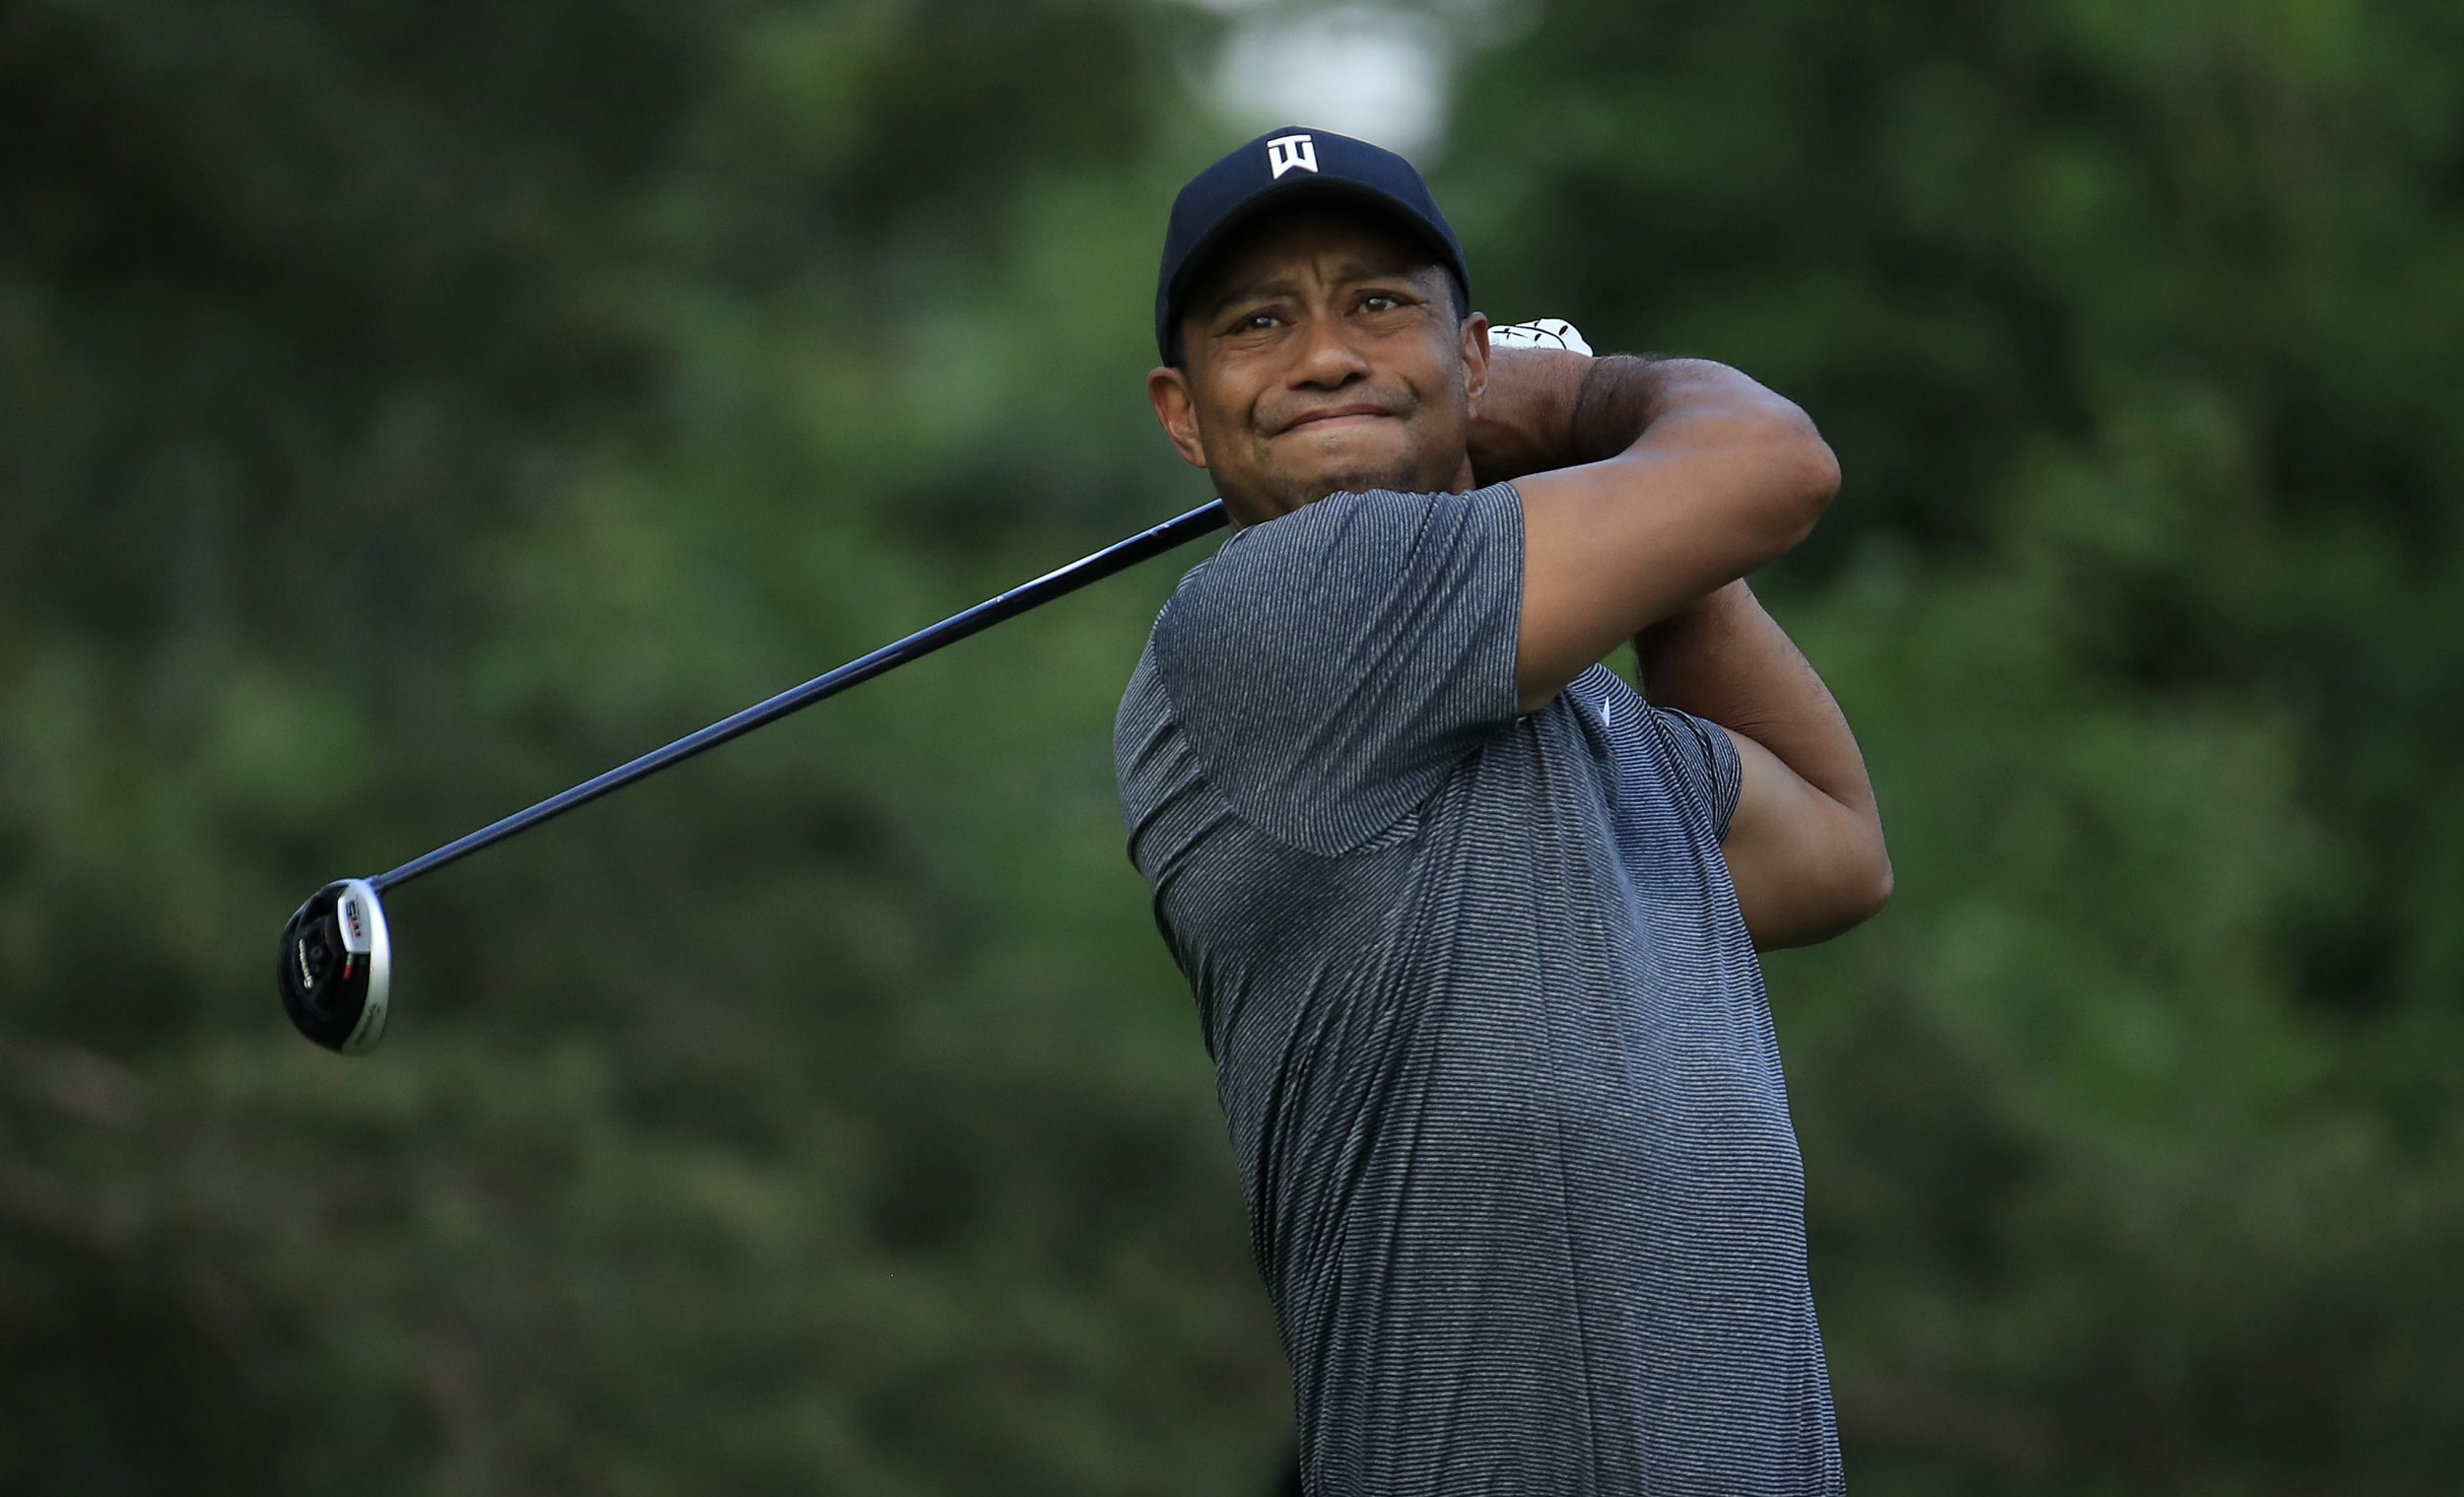 what time does tiger woods tee off tomorrow at the memorial tournament